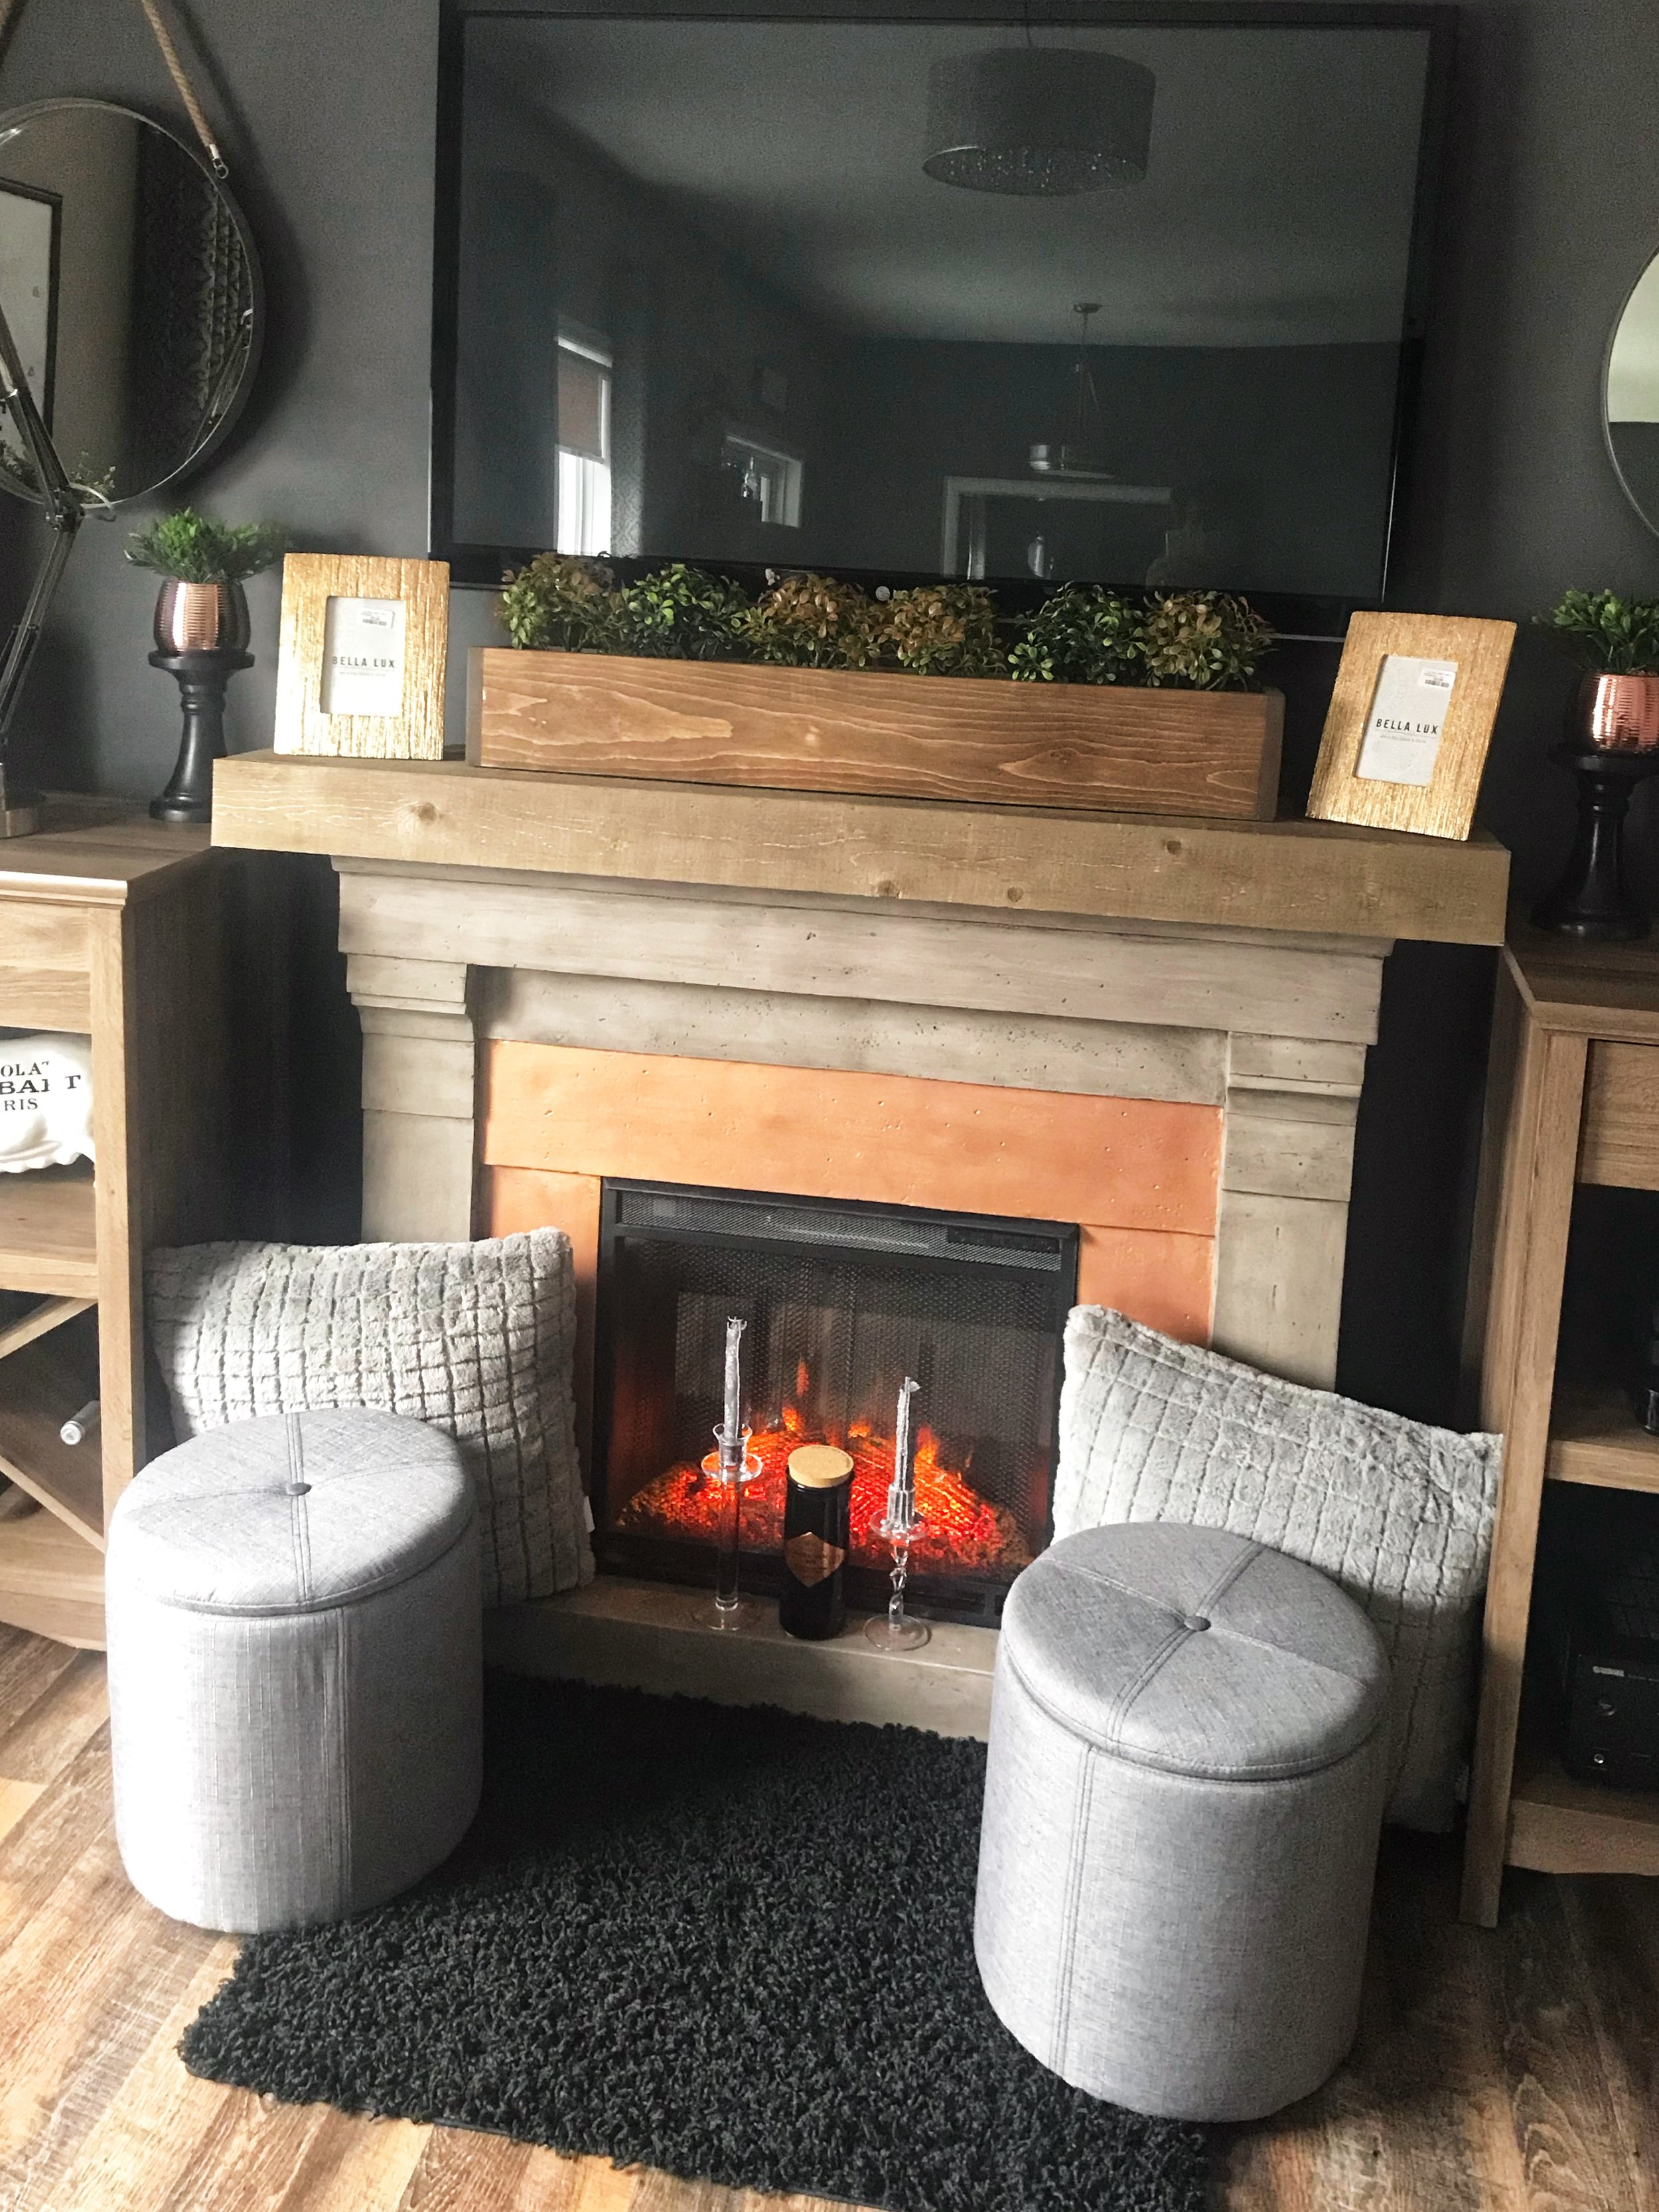 Our mini fireplace makeover from earlier this year